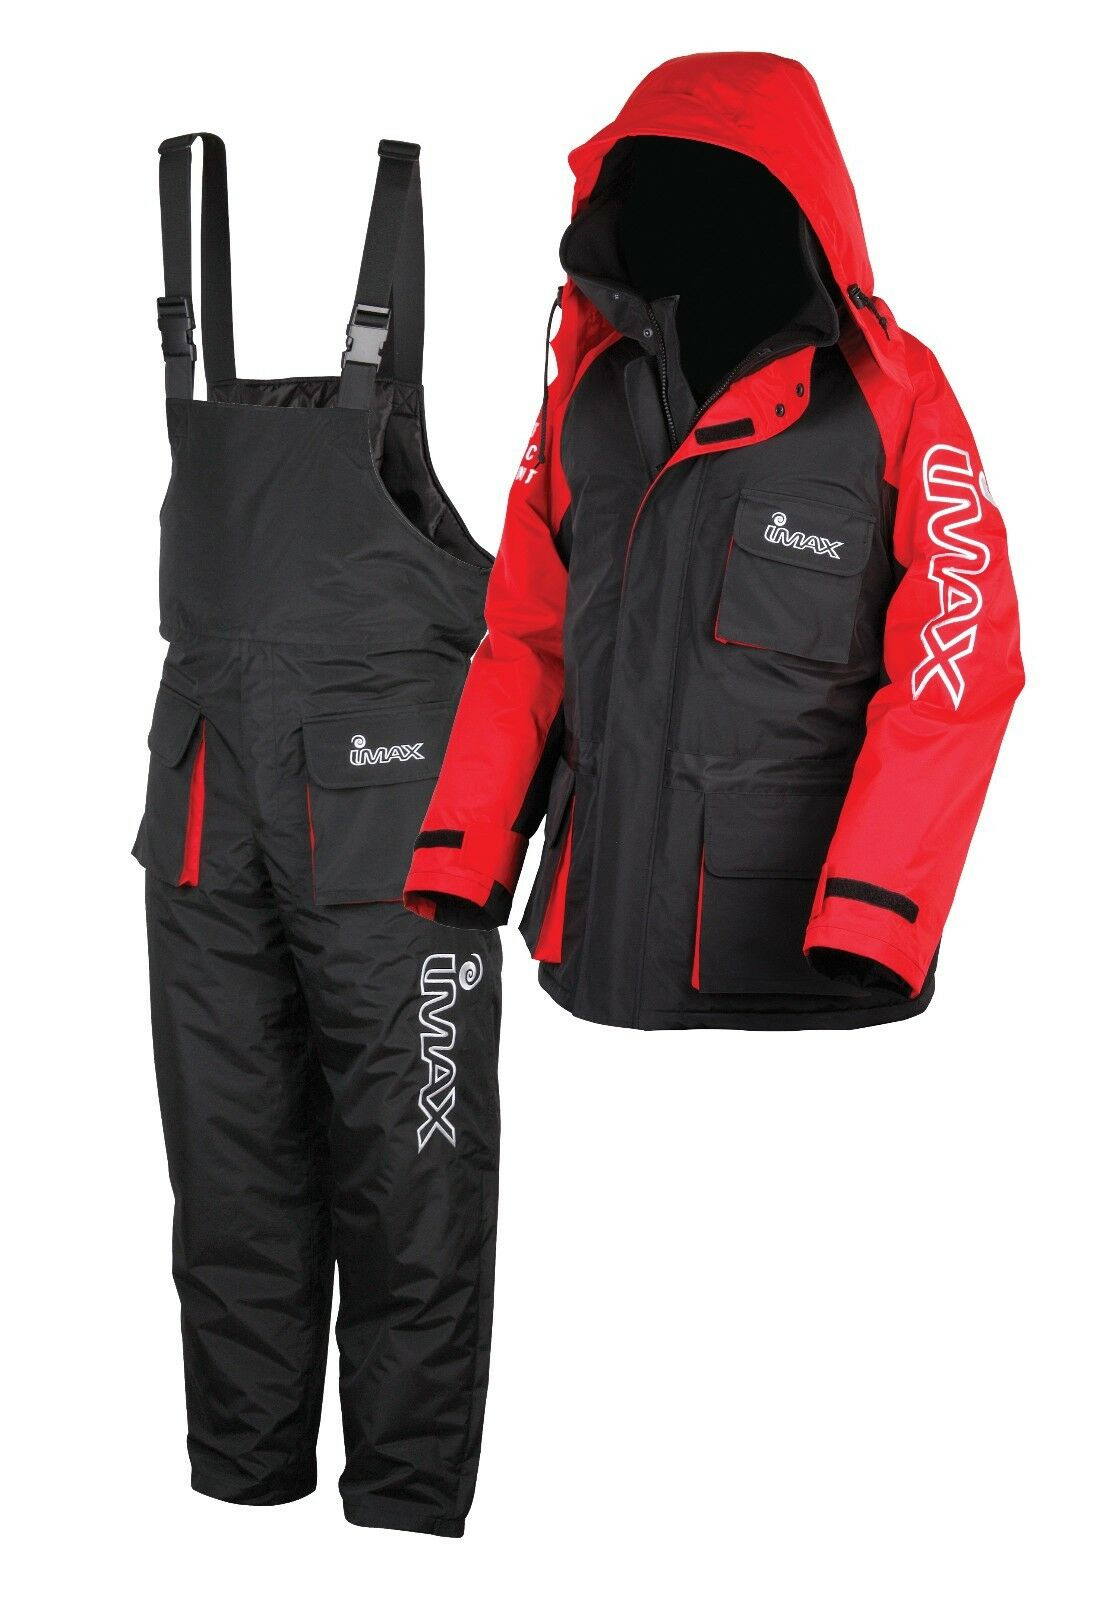 Imax Thermo Sea  Fishing Suit Windproof And Waterproof Thermal Lined  official website